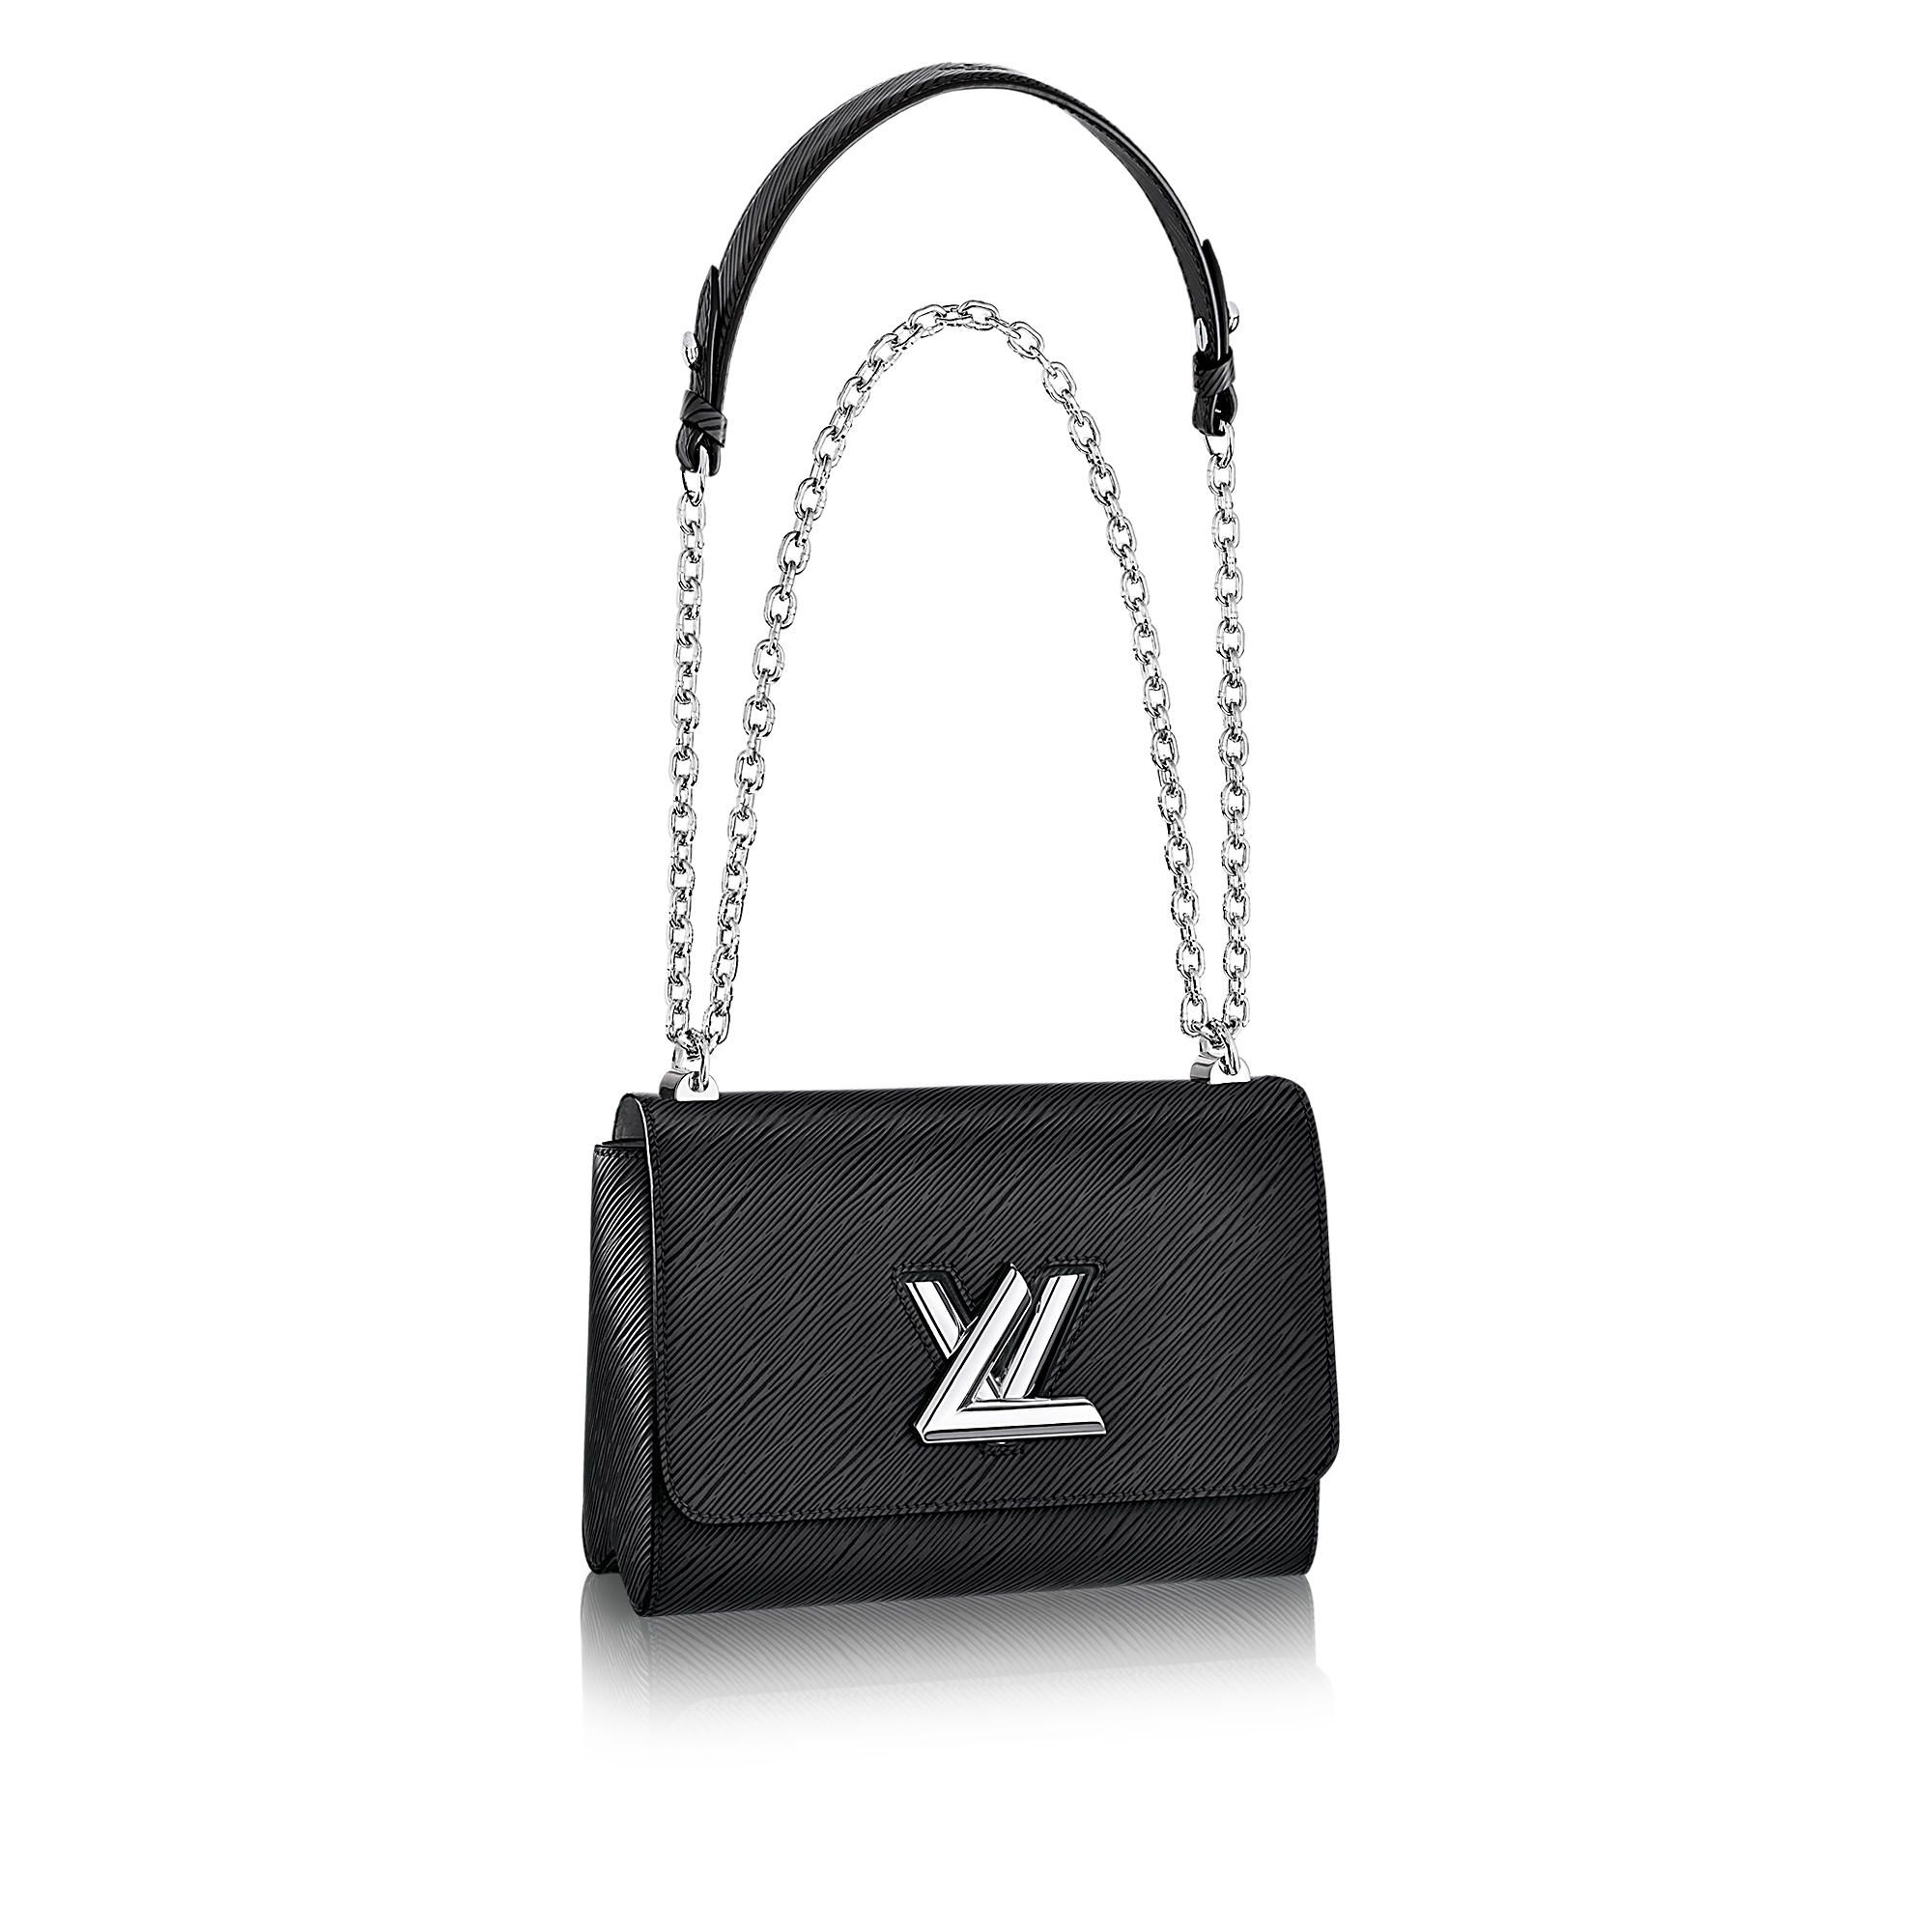 LOUIS VUITTON Official USA Website - Discover Louis Vuitton's designer  leather handbags for women, featuring crossbody bags and clutches, ...